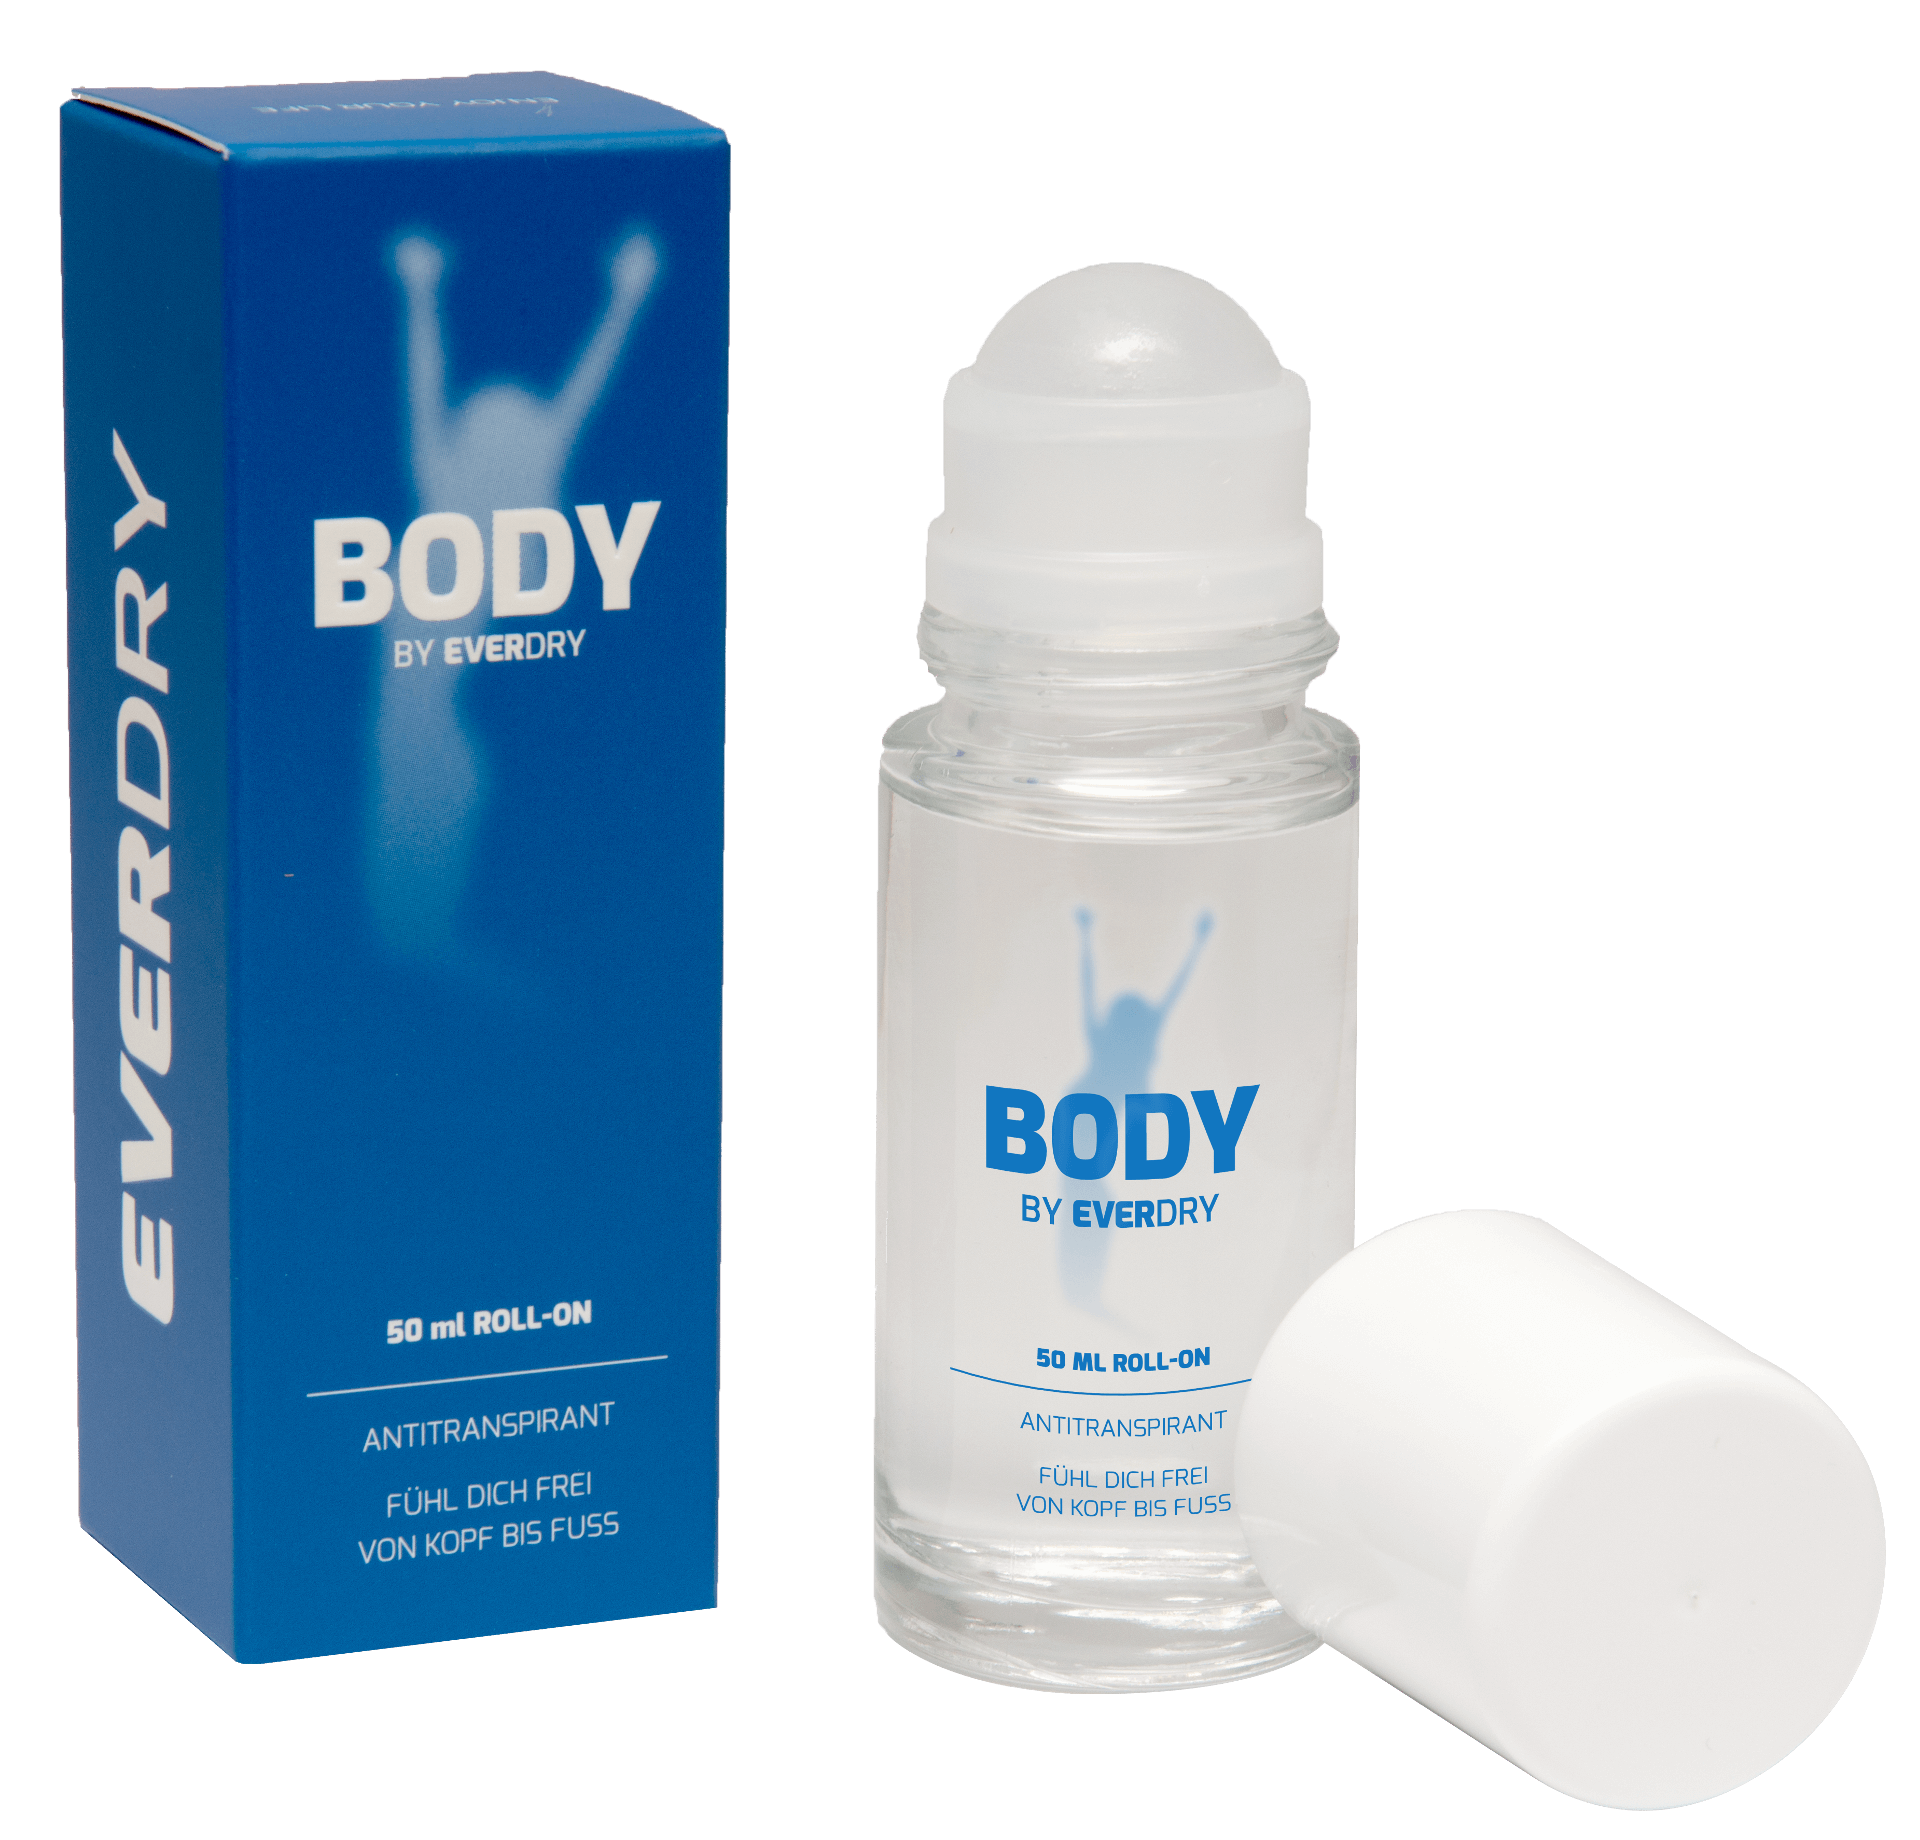 EVERDRY Antitranspirant Body Roll-On 50ml